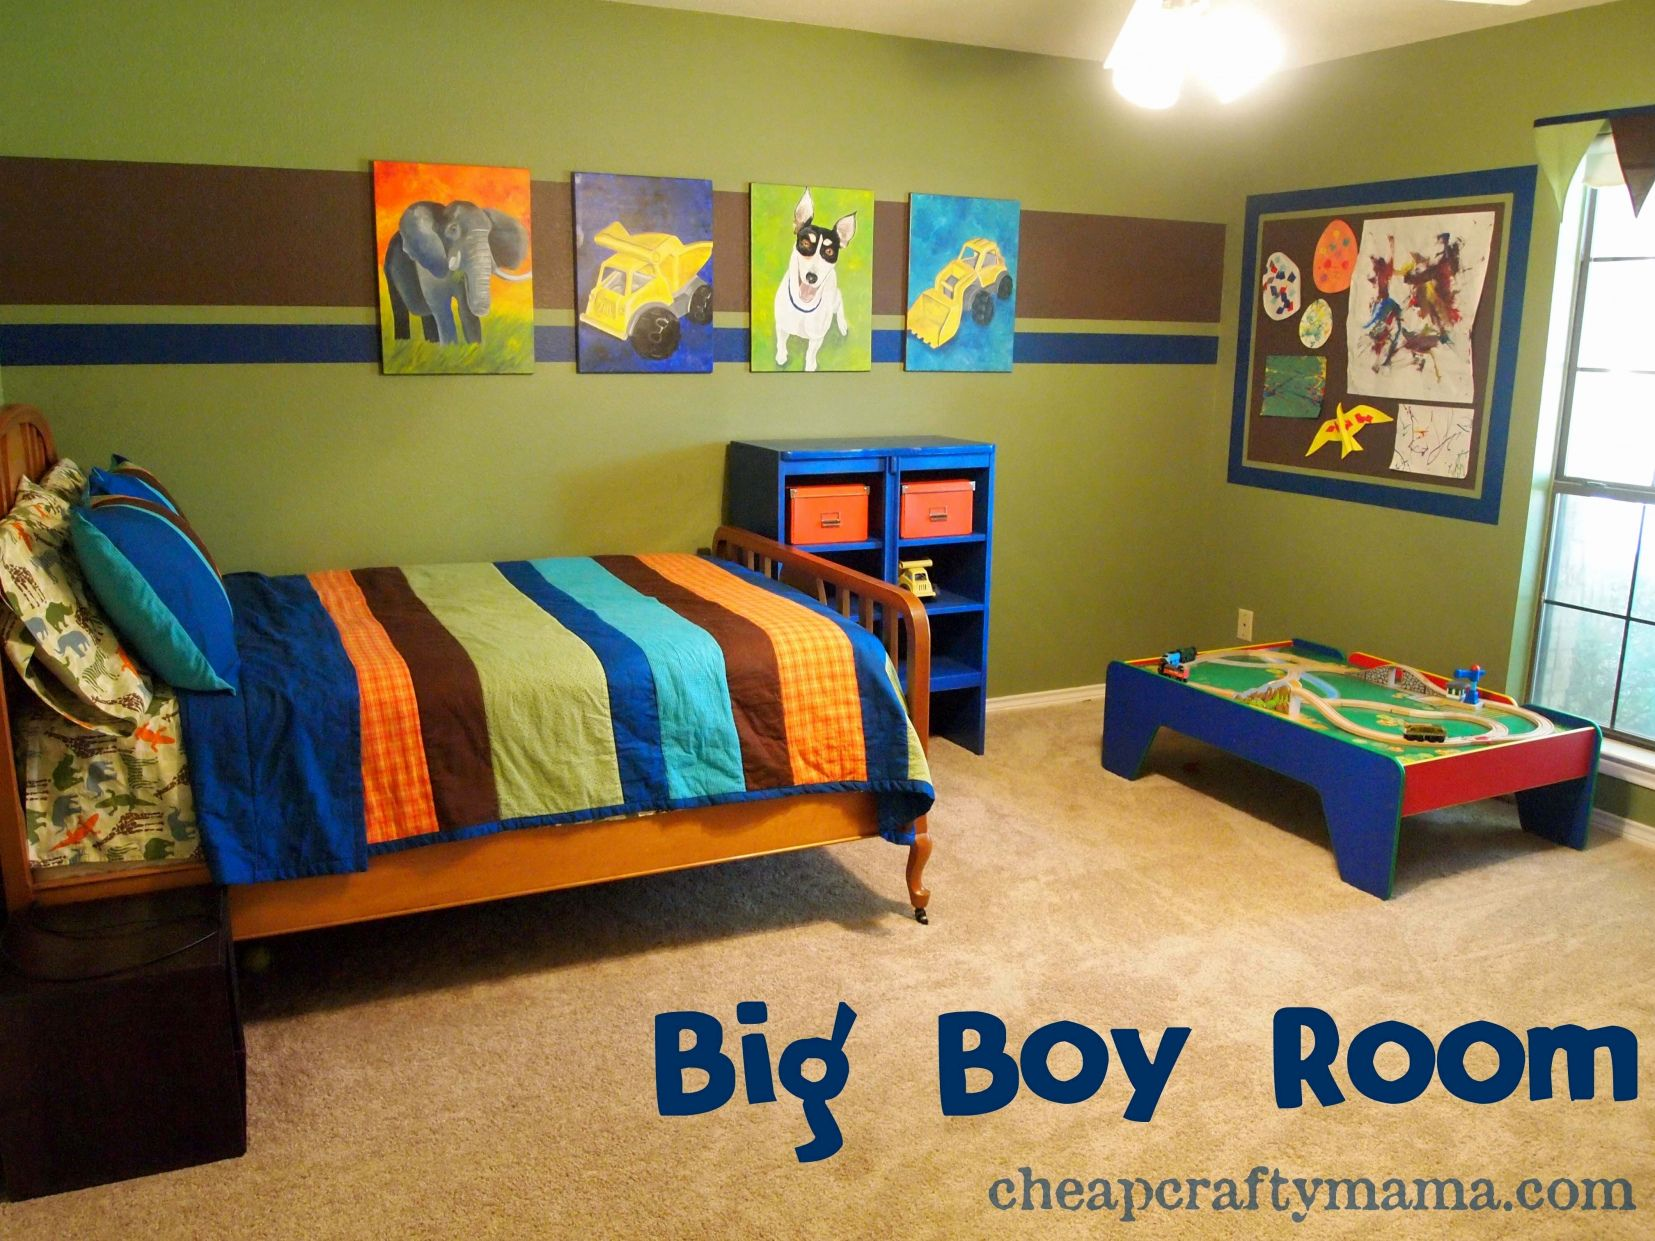 50+ 8 Year Old Boy Room Ideas - Wall Decor Ideas for Bedroom Check ...